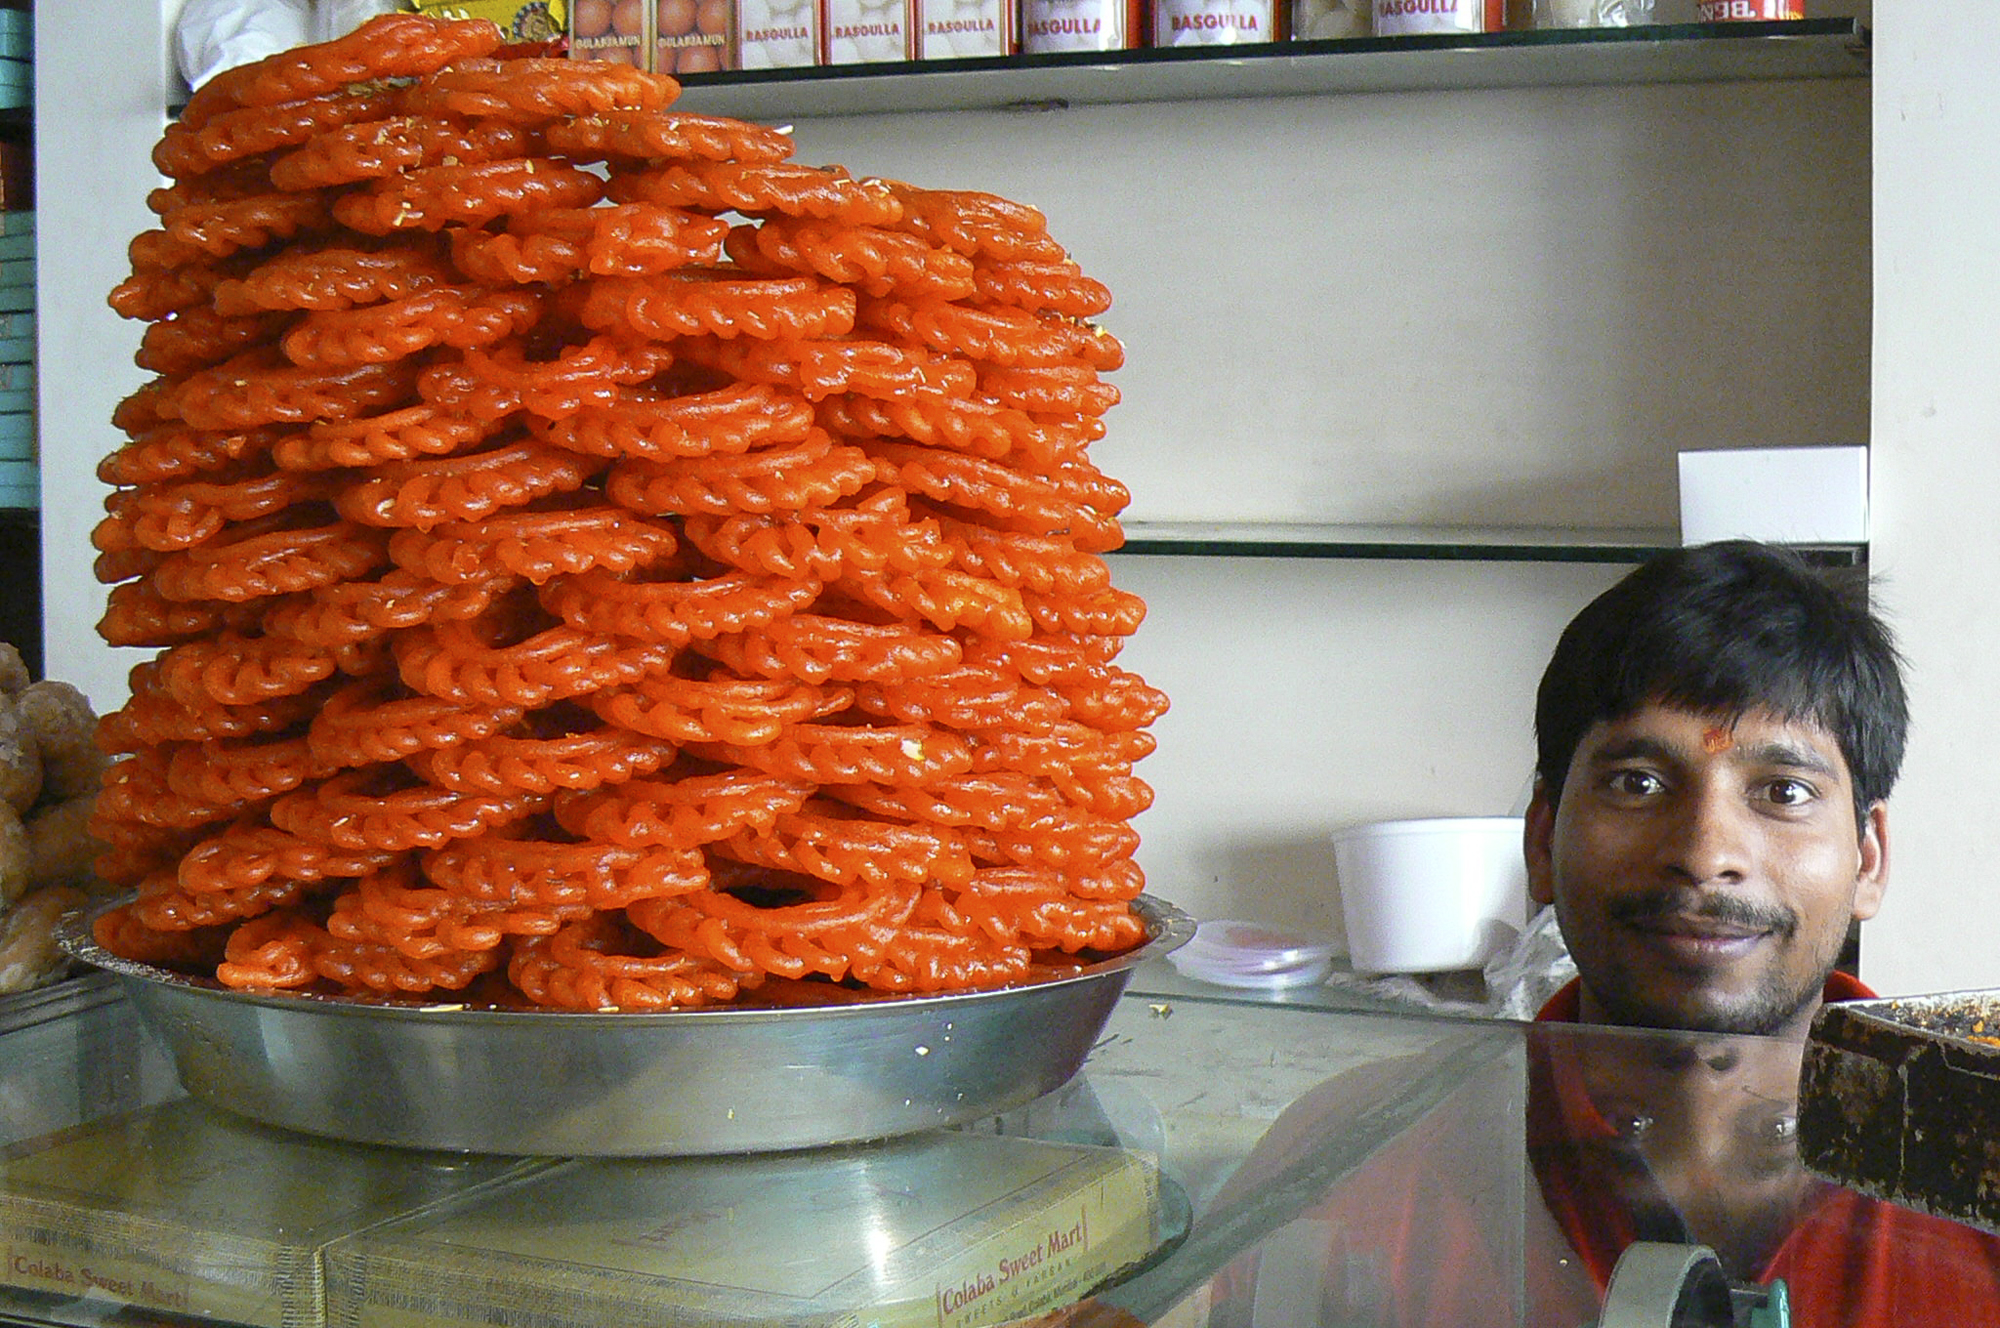 "Candy Man: ""This picture was taken in the neighborhood of Colaba in Mumbai, India, in a candy shop. The reason I like this picture so much is because of the dominant role the candies play in the overall composition, symbolically reflecting some of what India can offer (or at least what the West captures at first glance) – taste, color, smell and hospitality. All big and extravagant. The twisted reflection of the smiley candy man's face completes this image, calling us to revisit our initial – Western – premises."" -- Ravid Itay (Handa Center)"